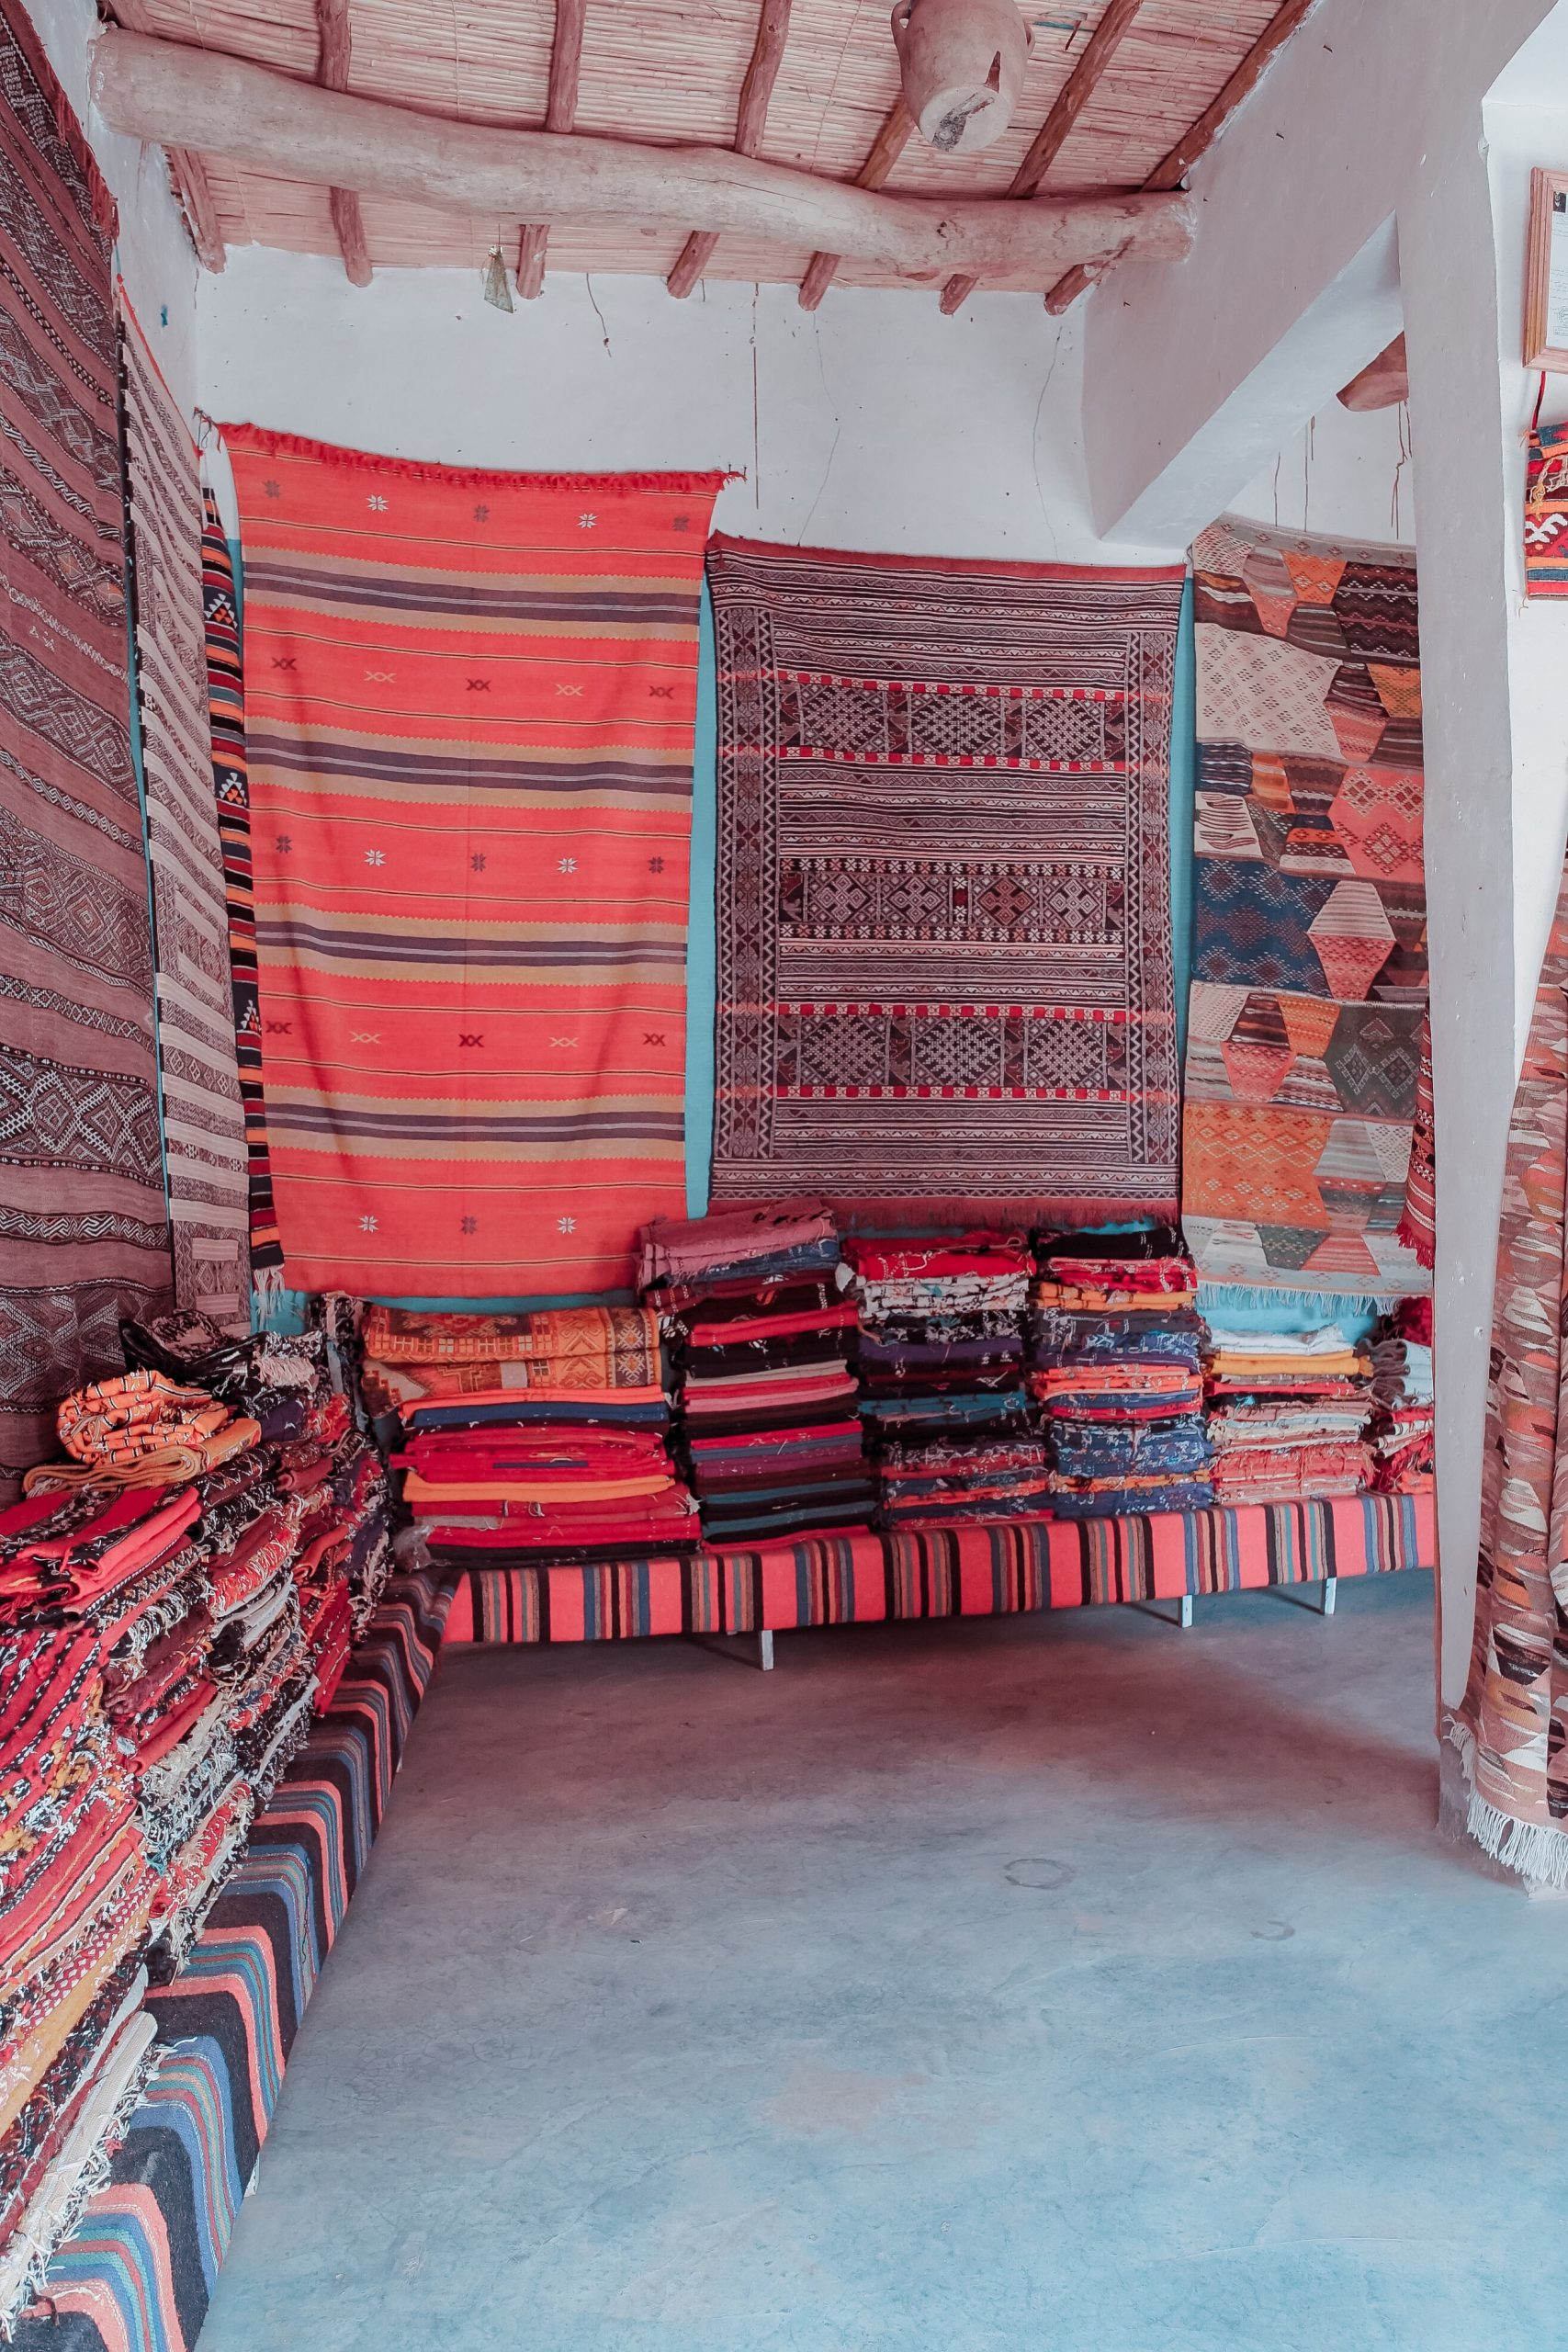 gallery image for Woven Treasures Of Morocco